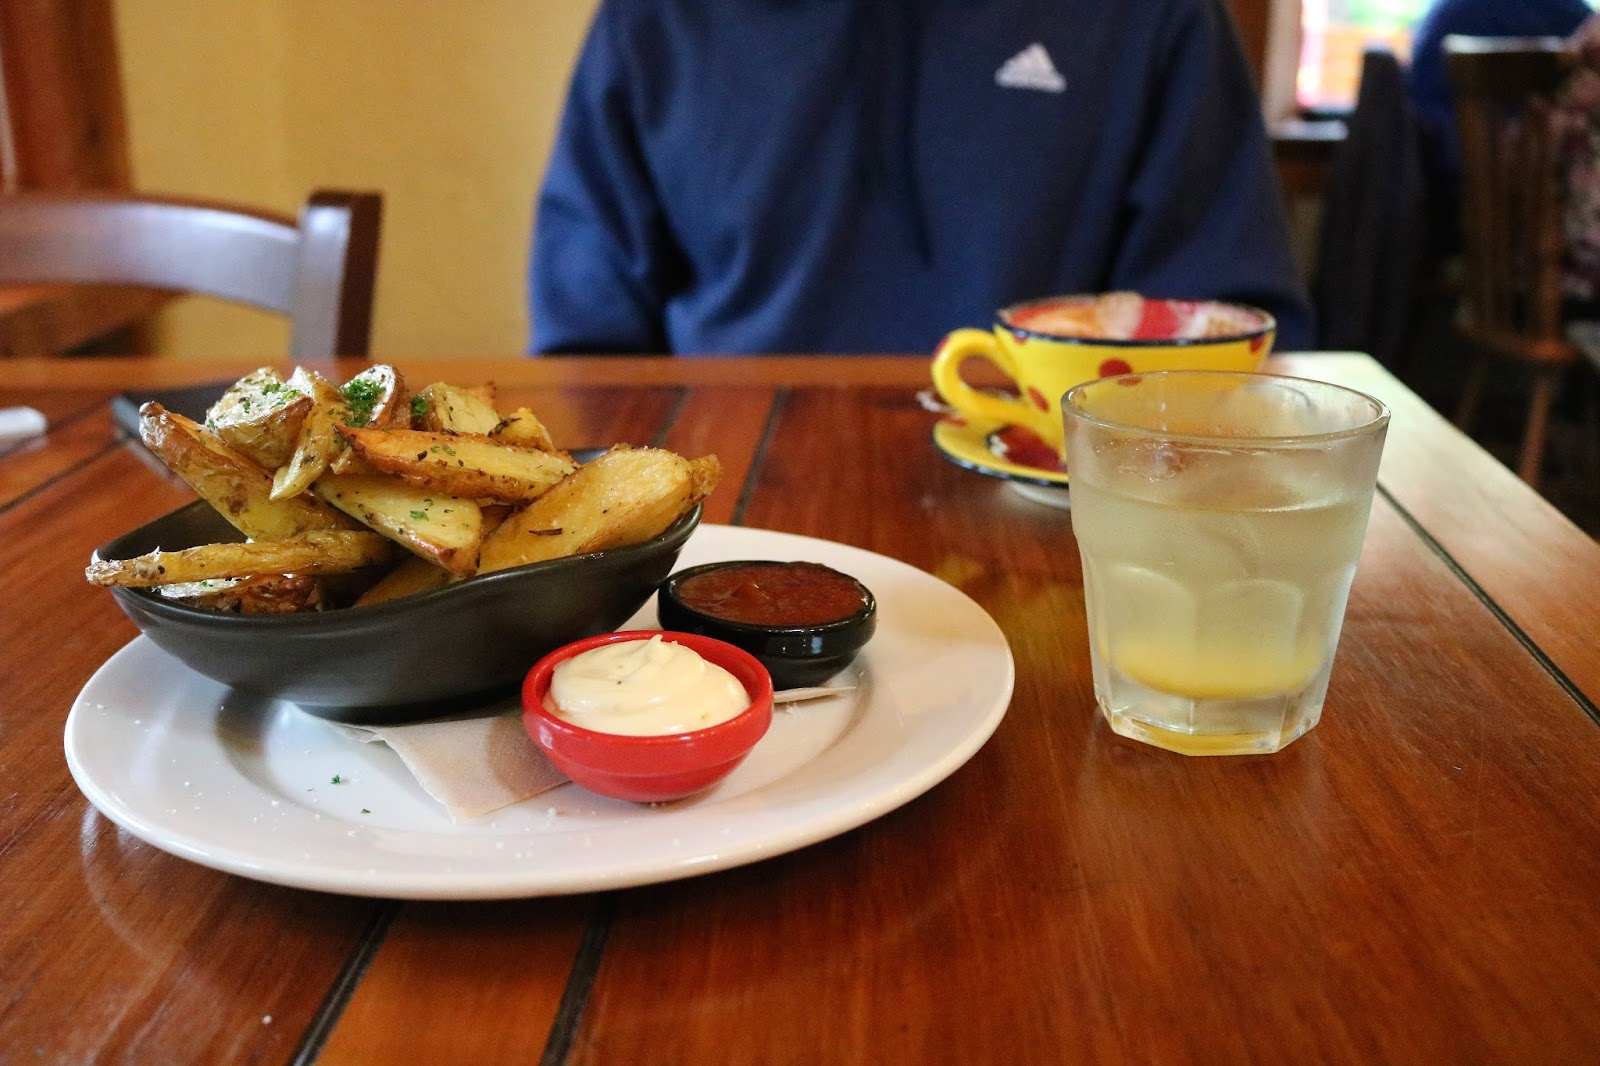 Potato wedges from The Jester House in Nelson, New Zealand